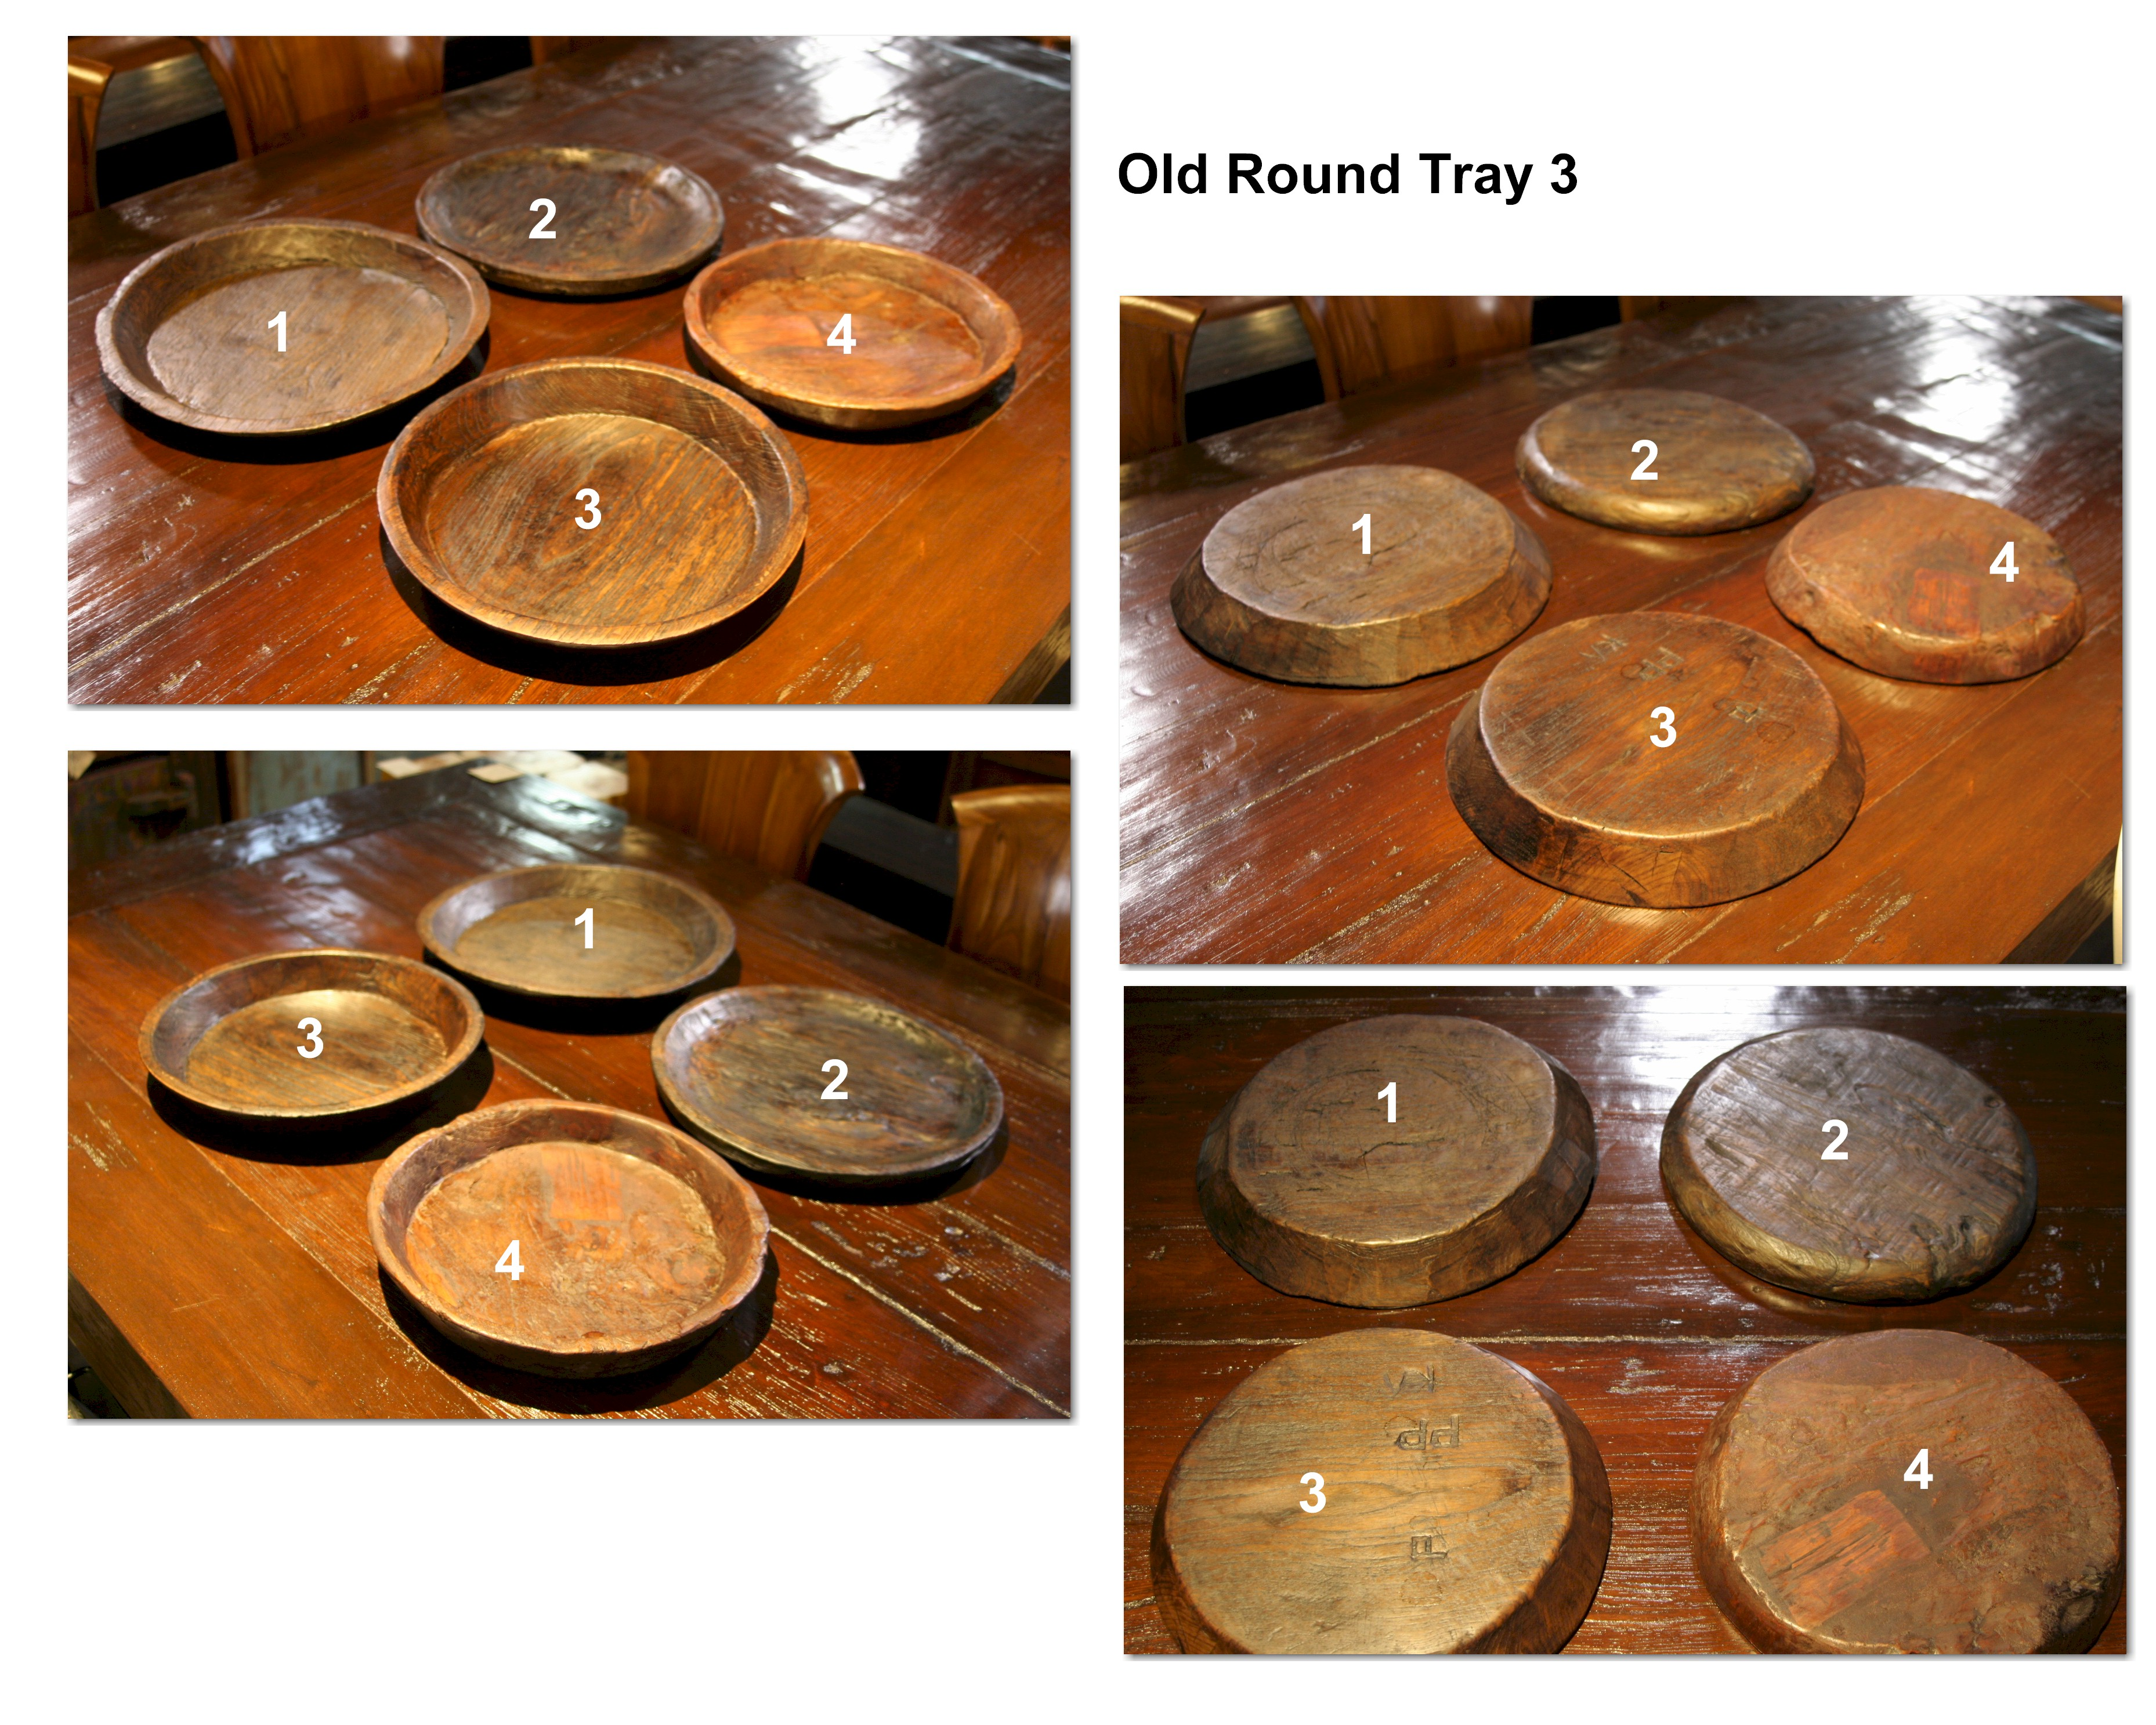 Old Round Tray 3